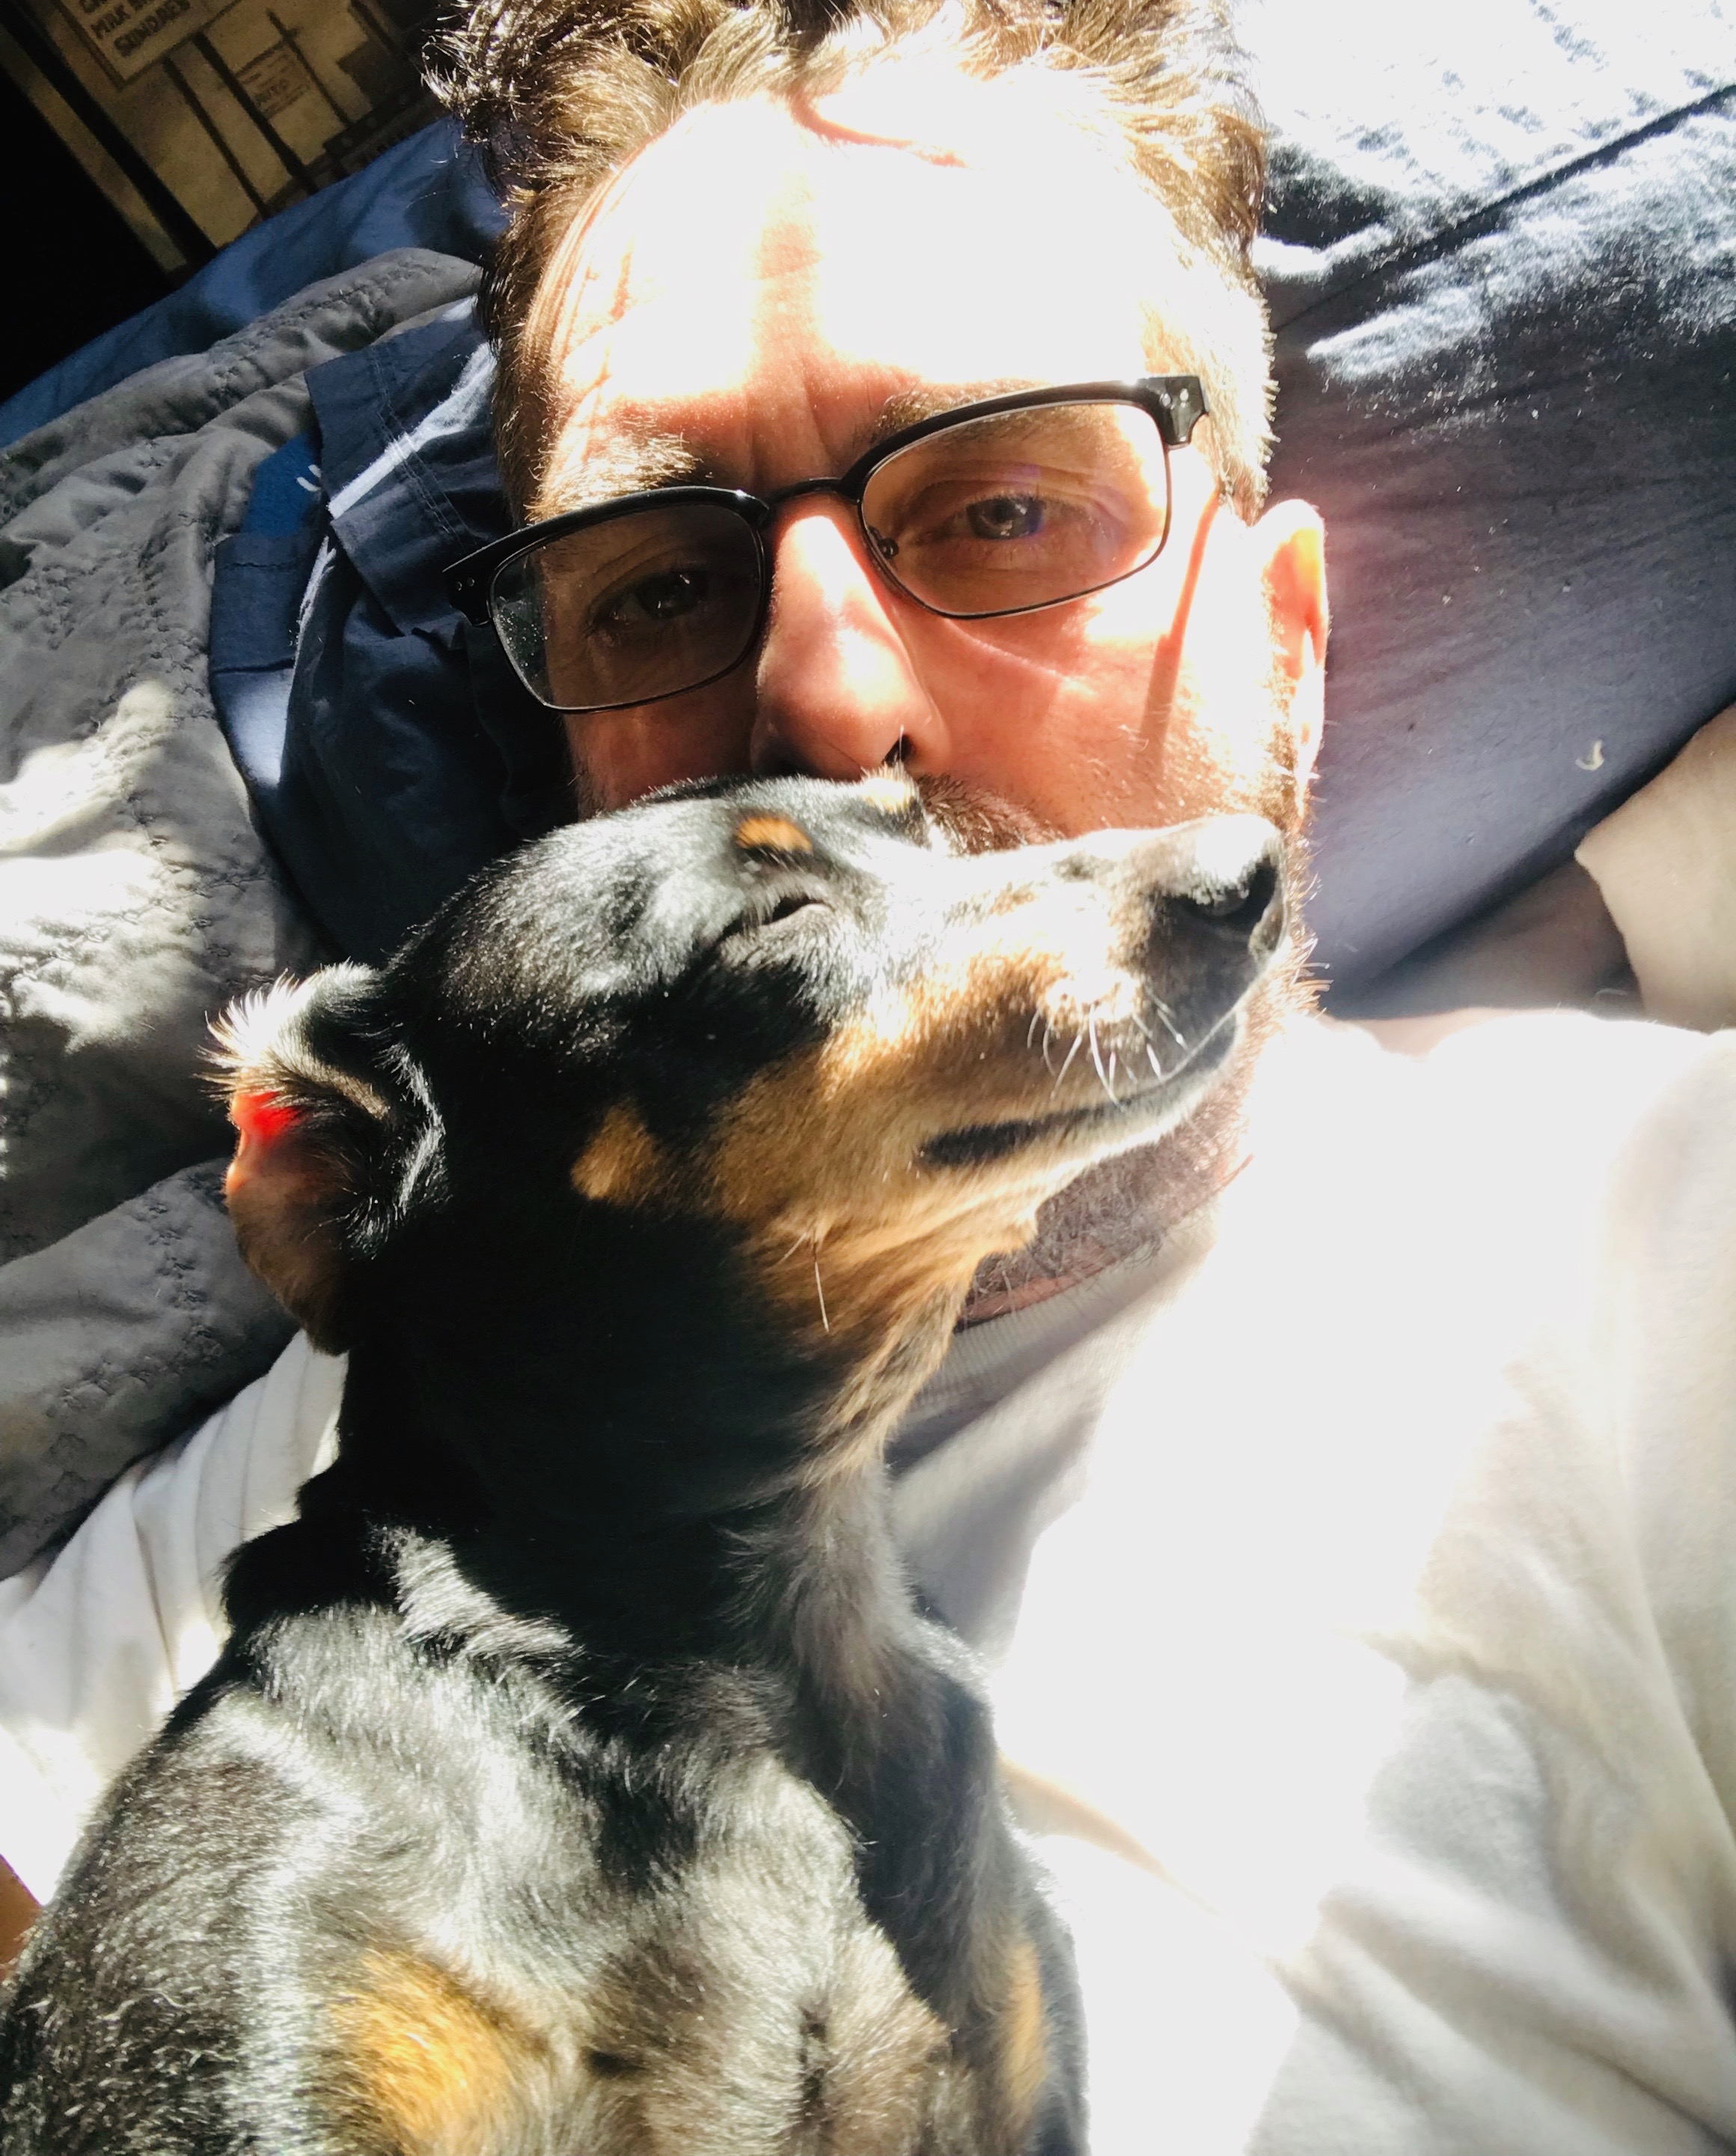 "We have many ""Soulmates"" in one lifetime and Yes animals can be soulmates and healers to us along the path of our journeys. Heres is one of my healers: Serena my 12 pound Dachshund. Who has brought me joy and taught me lessons in that healing comes in many forms.    I'am versed in Animal Medicine and Totems both Eastern and Western."